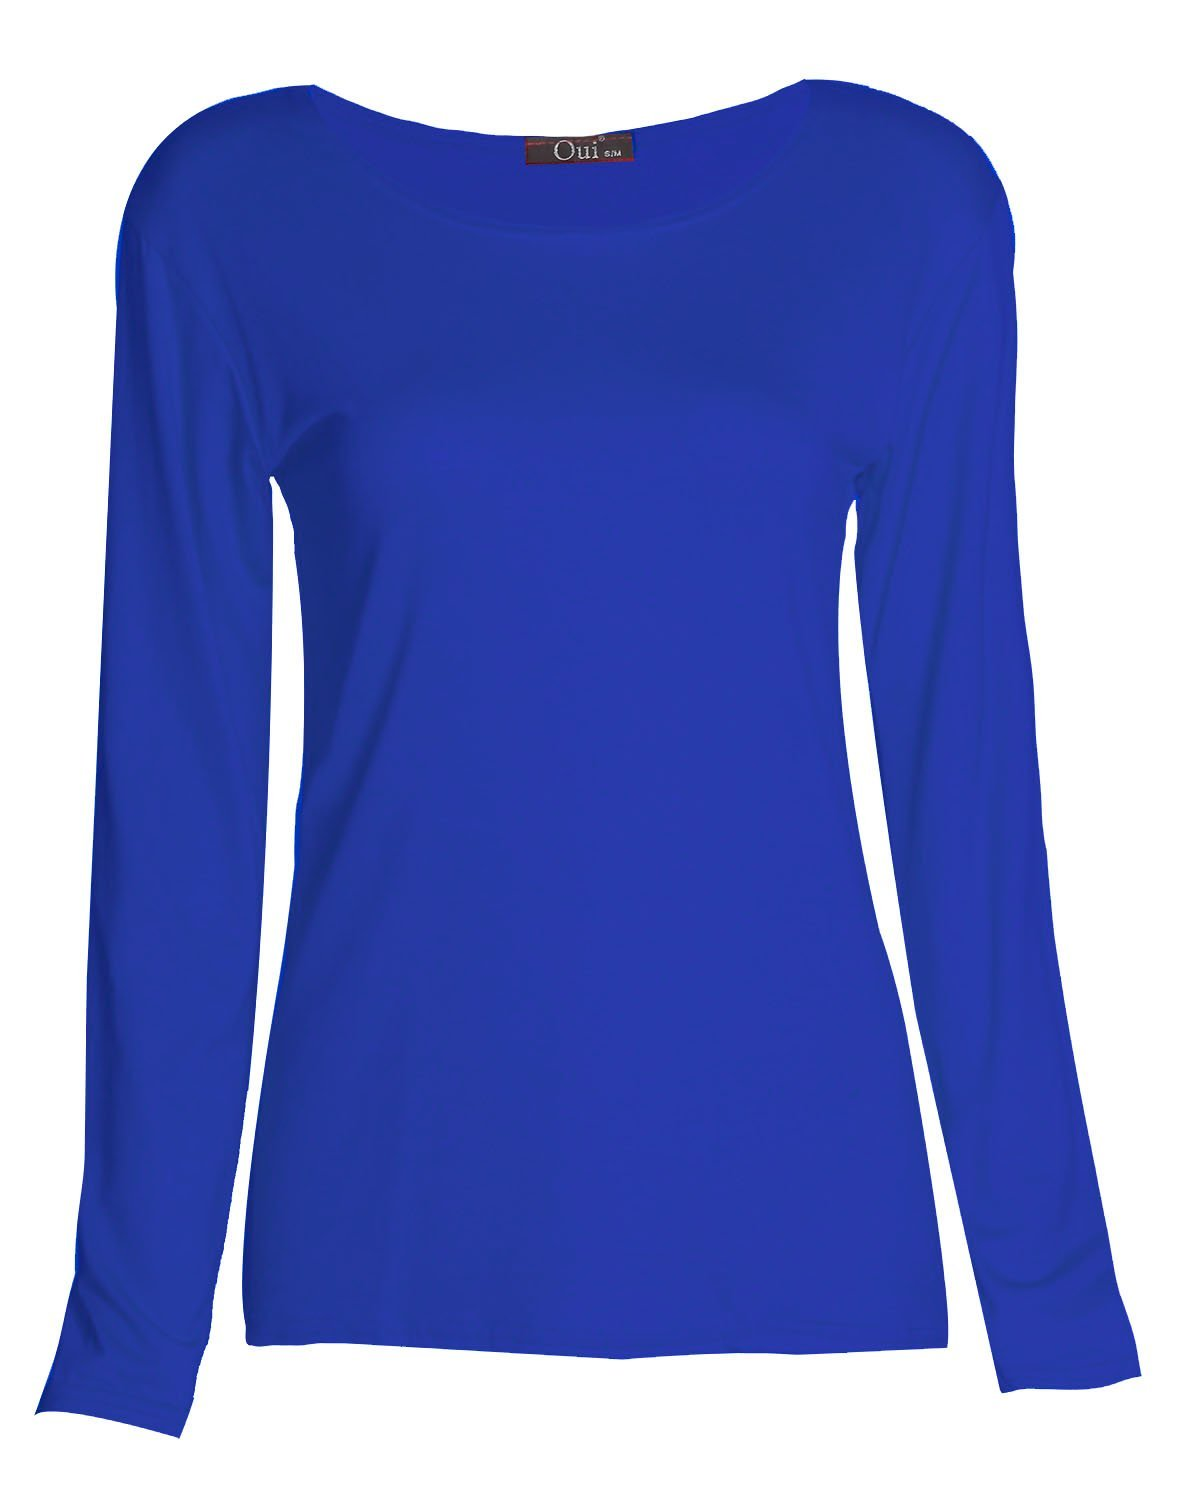 Forever Girls Plain Long Sleeves Scoope Neck Stretchy T-shirt Top